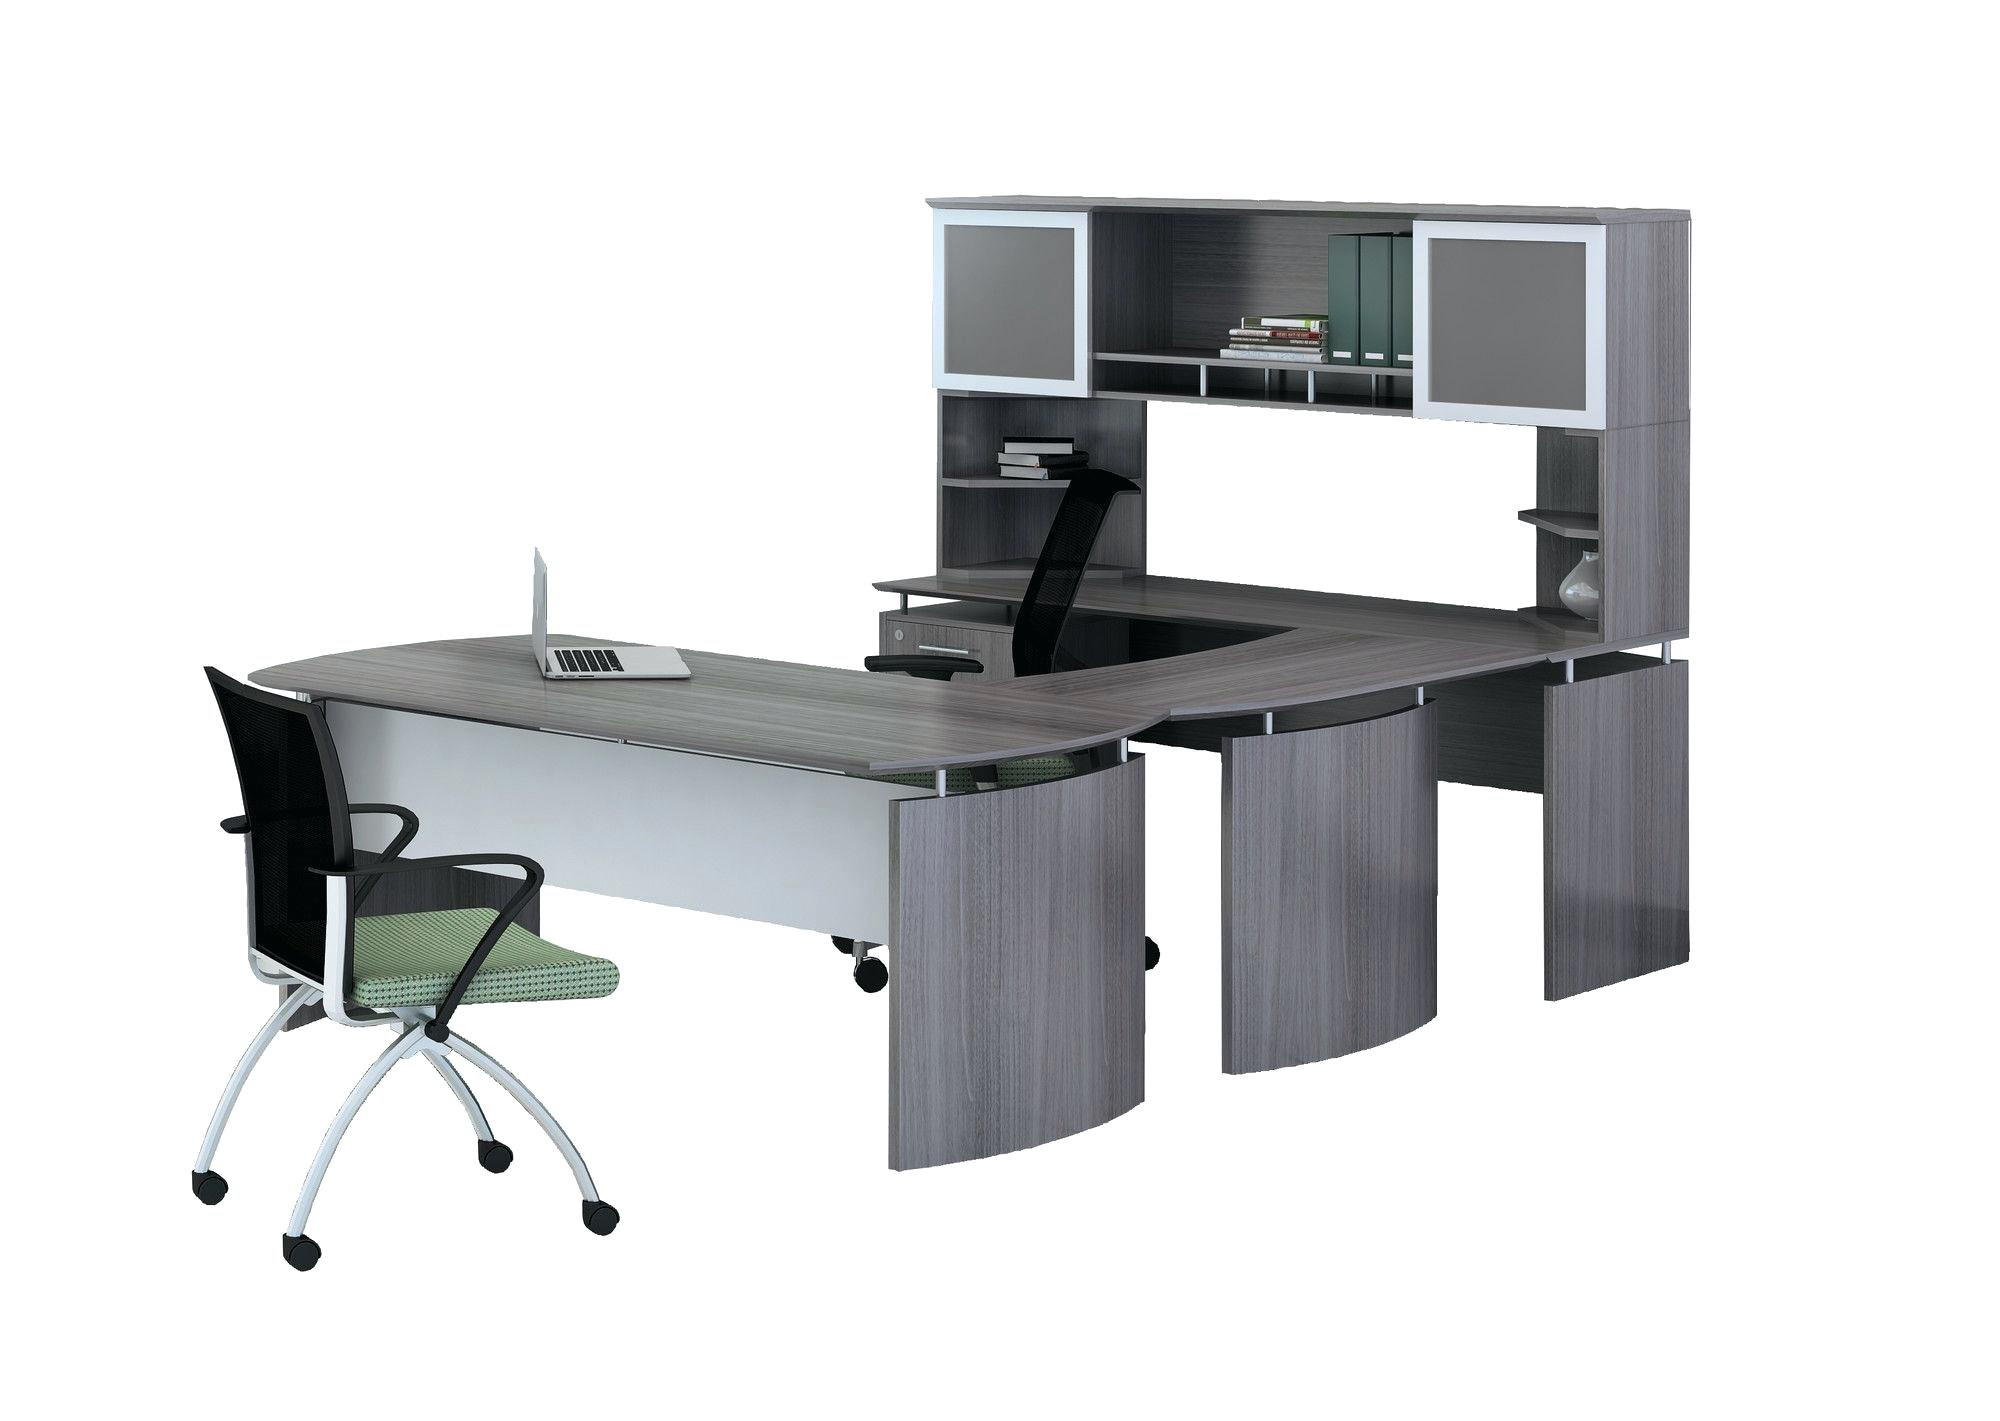 Office Depot Desks | Office Depot Desk Organizer | Office Max L Shaped Desk